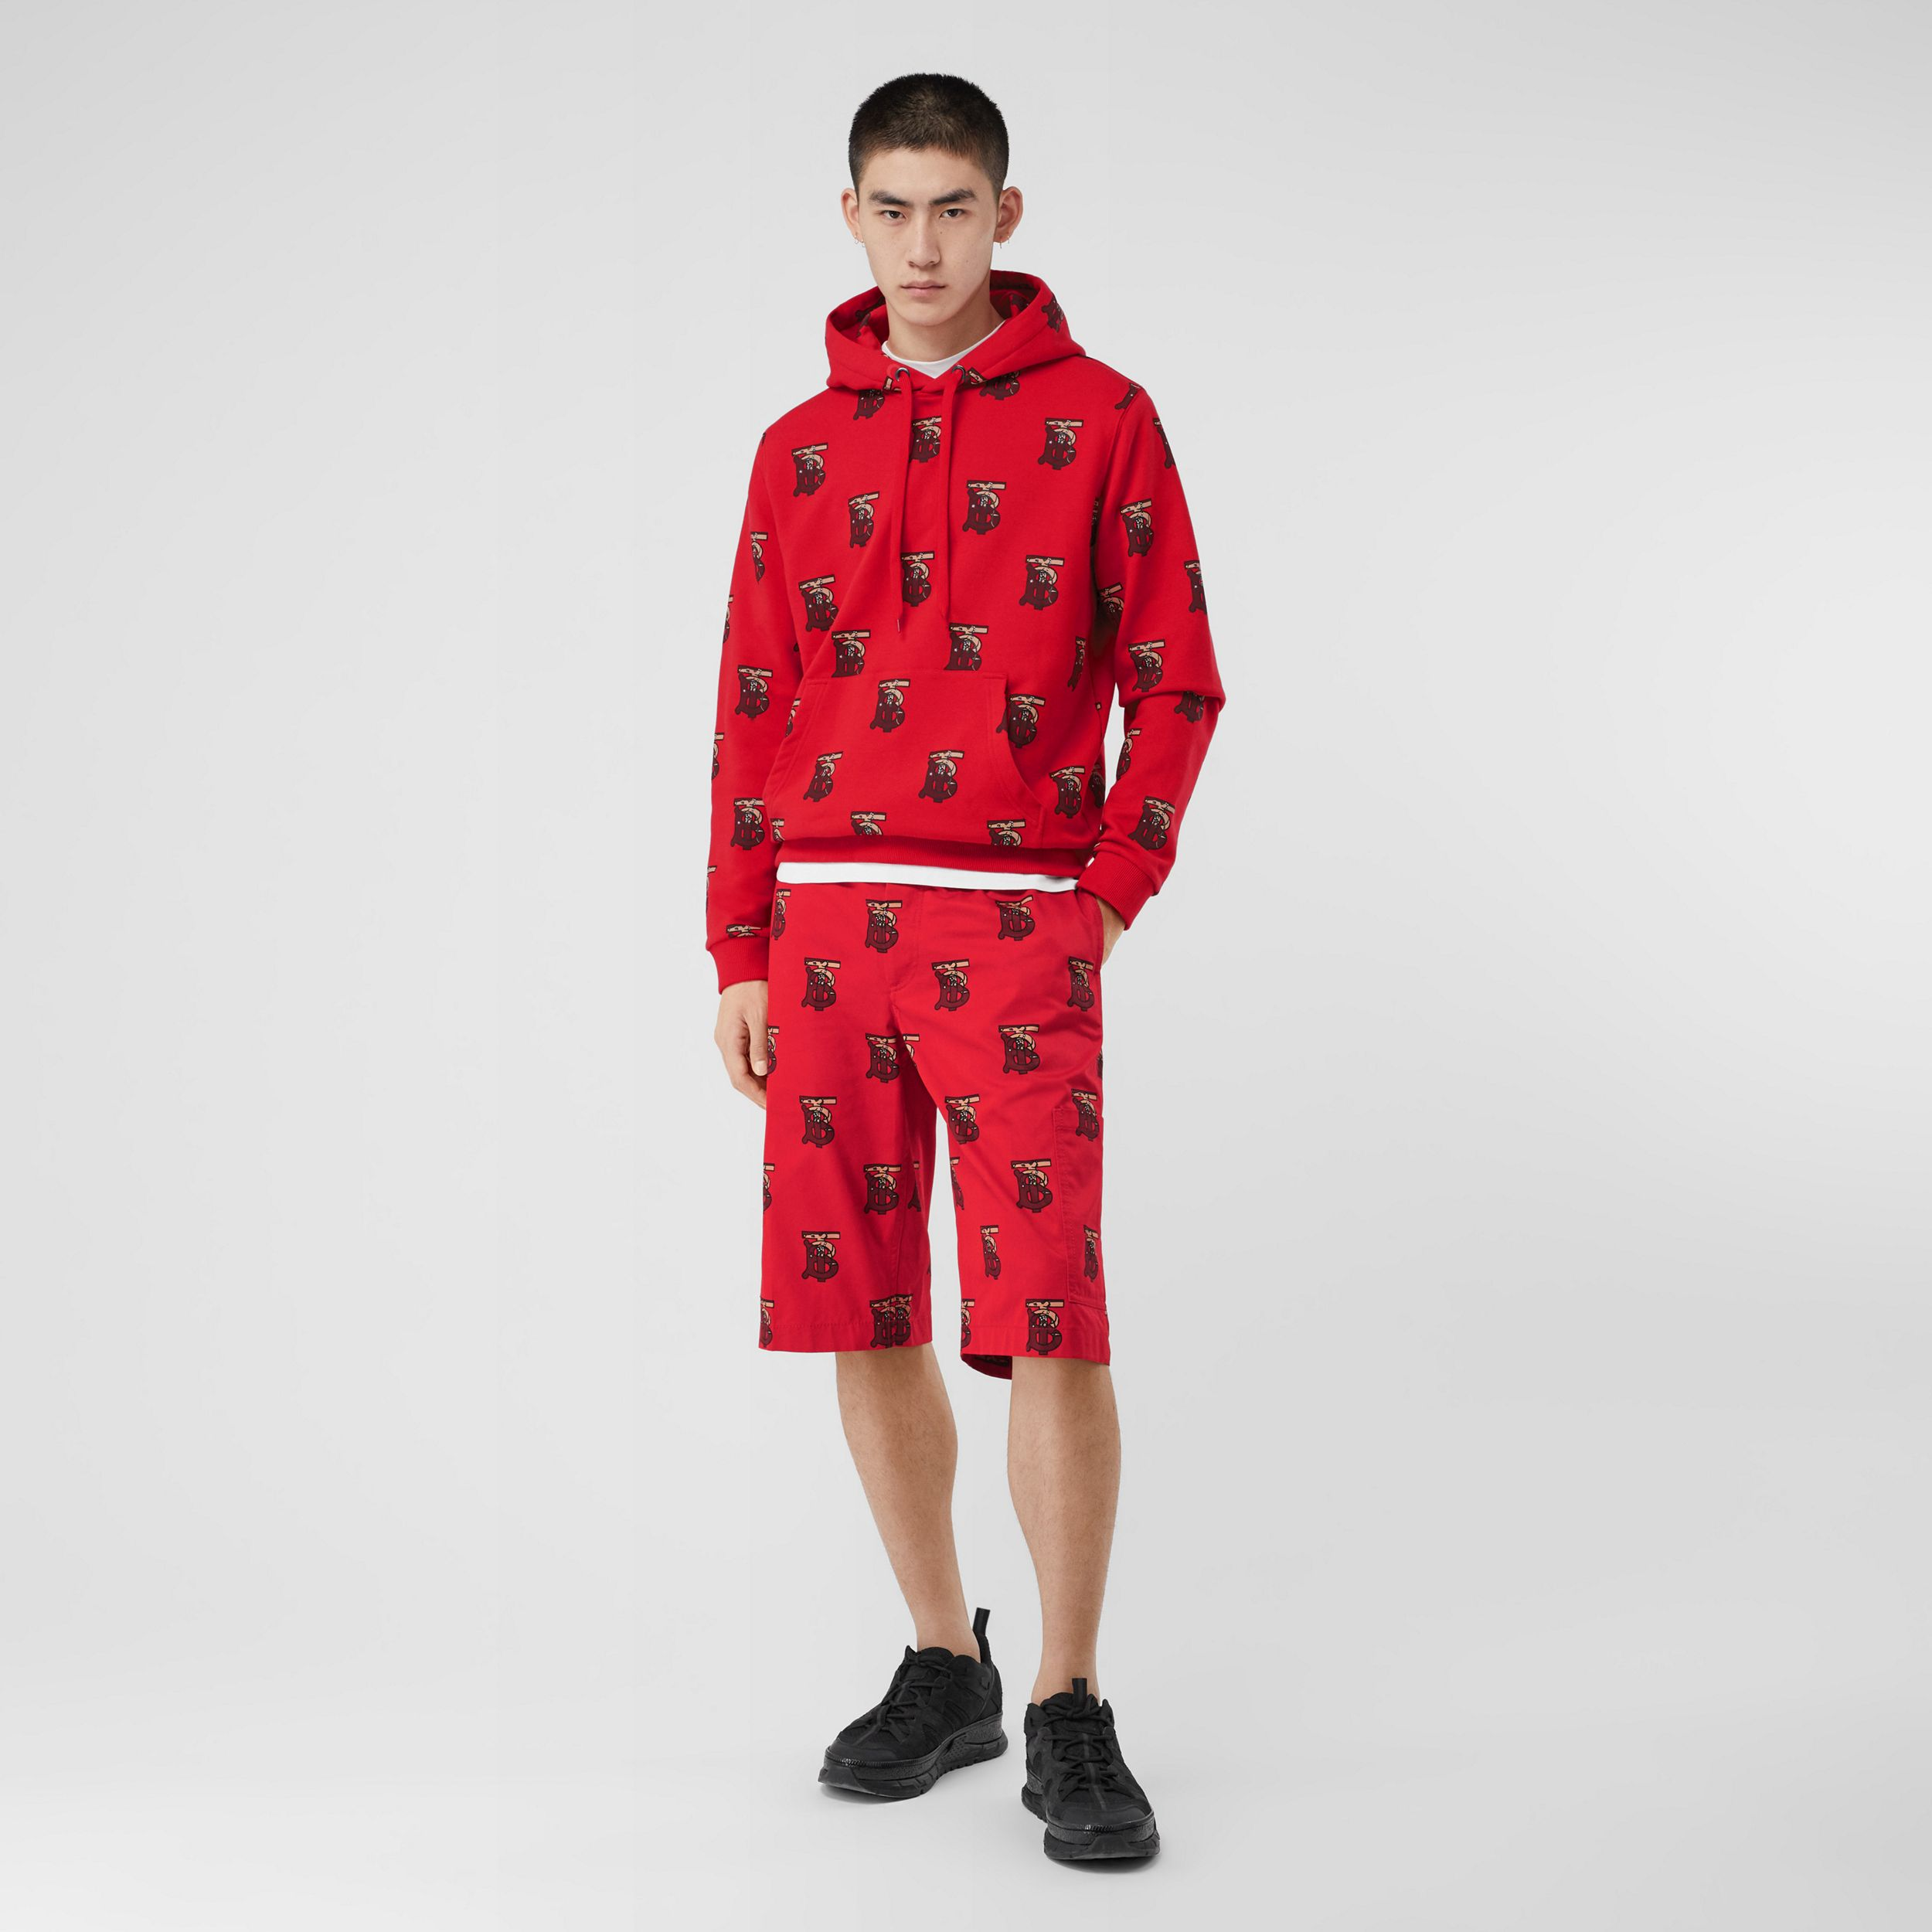 Monogram Motif Cotton Oversized Hoodie in Bright Red - Men | Burberry - 1